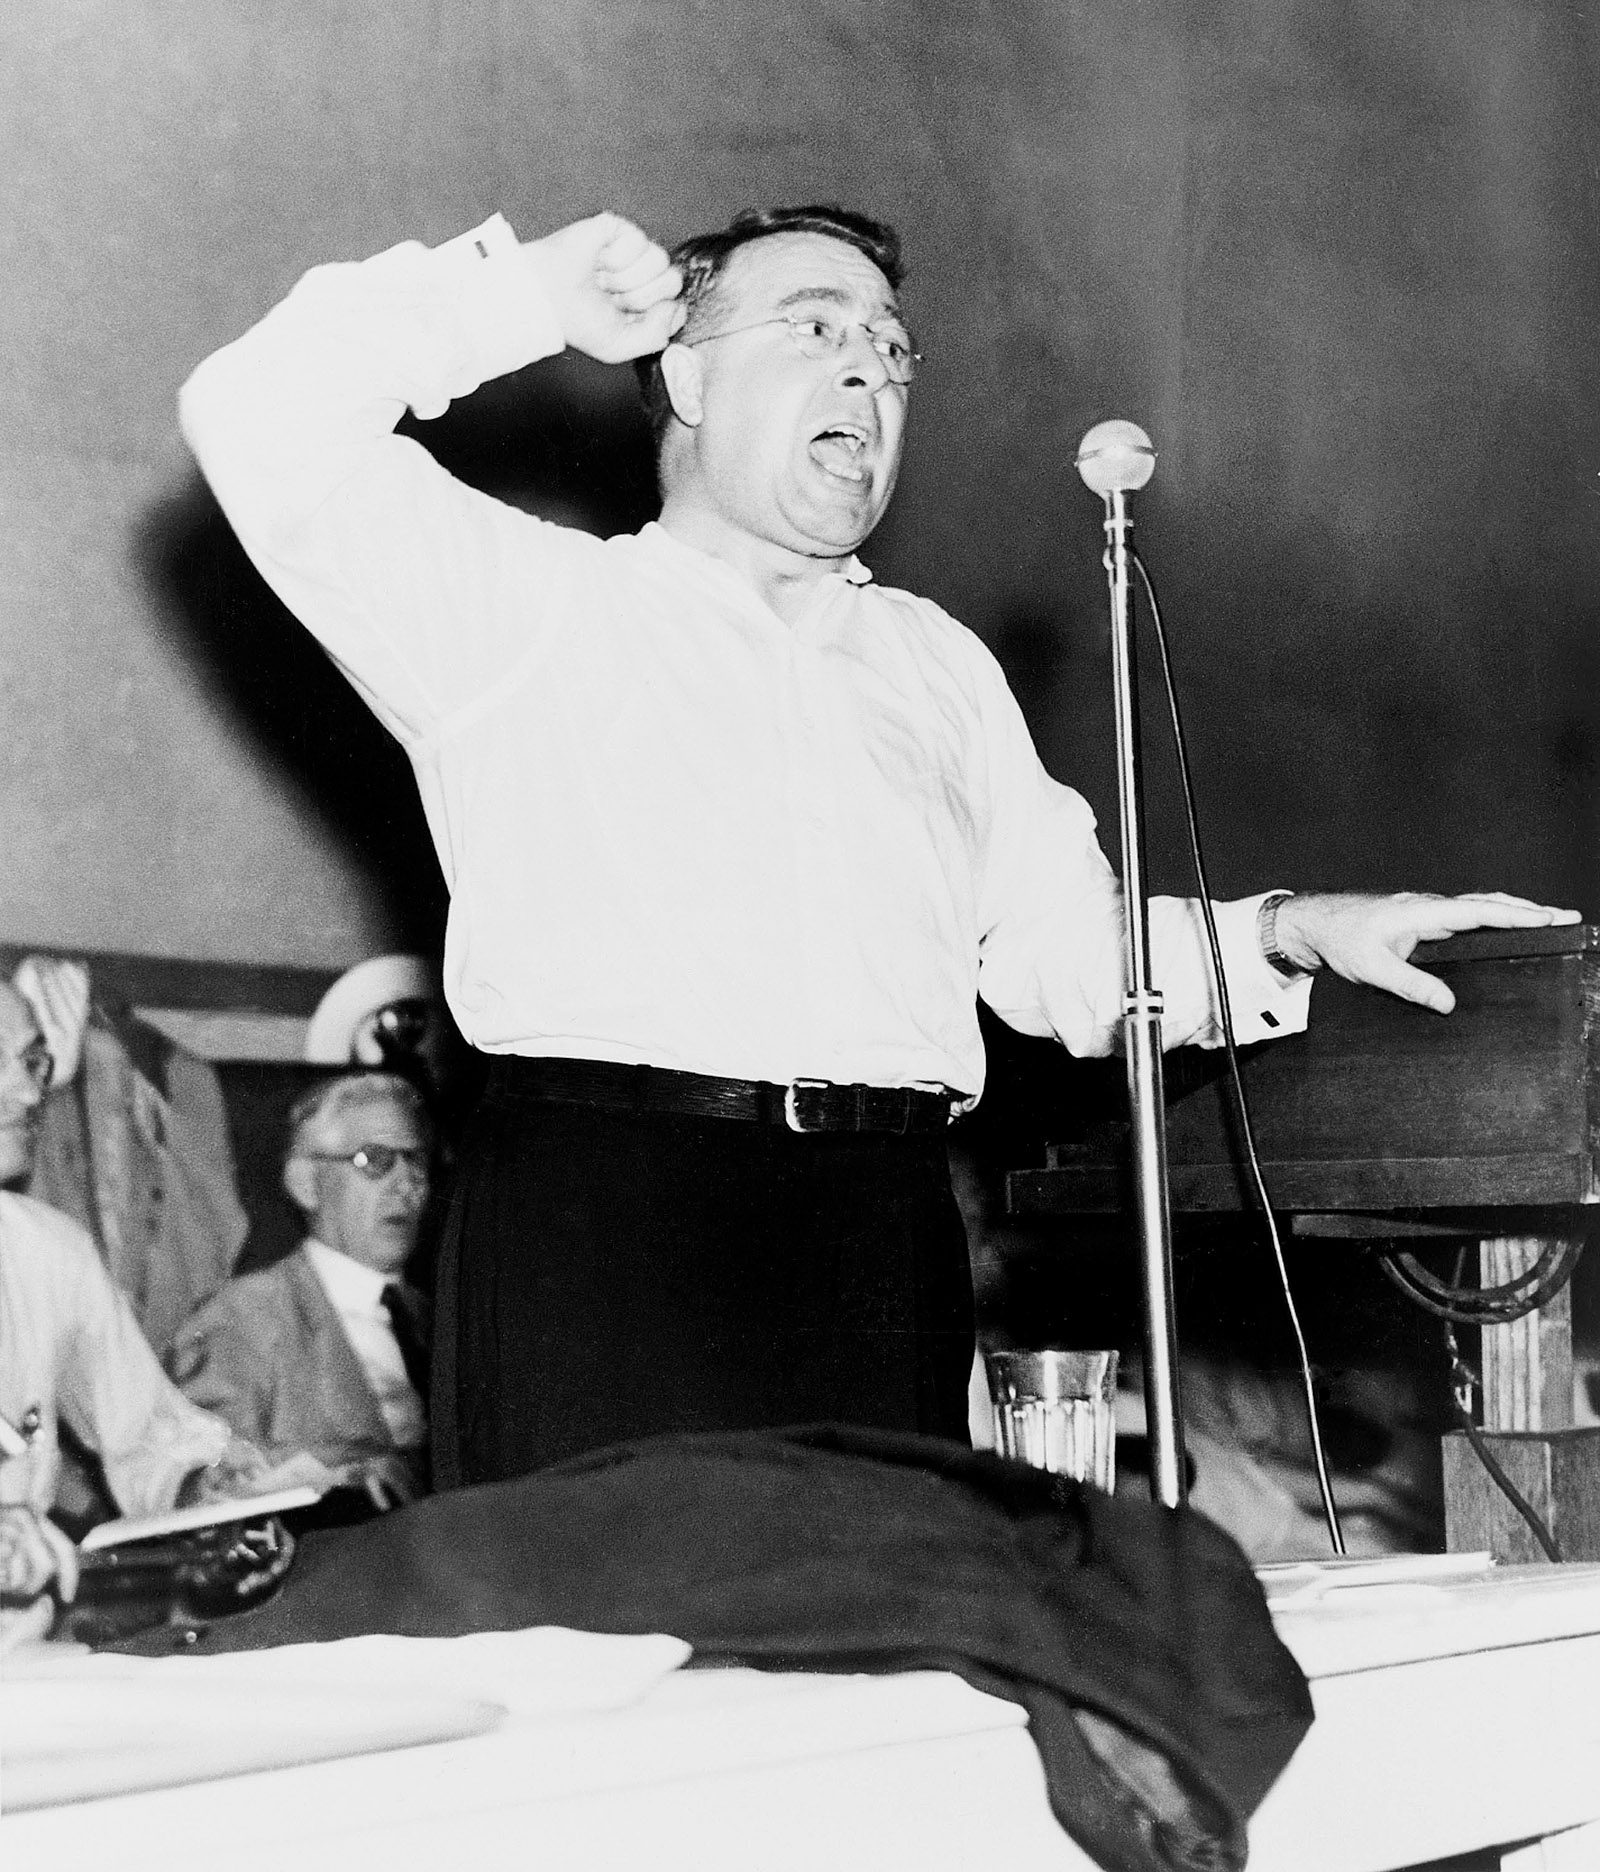 Father Charles Coughlin attacking the Roosevelt administration at the Townsend Convention, Cleveland, Ohio, July 1936